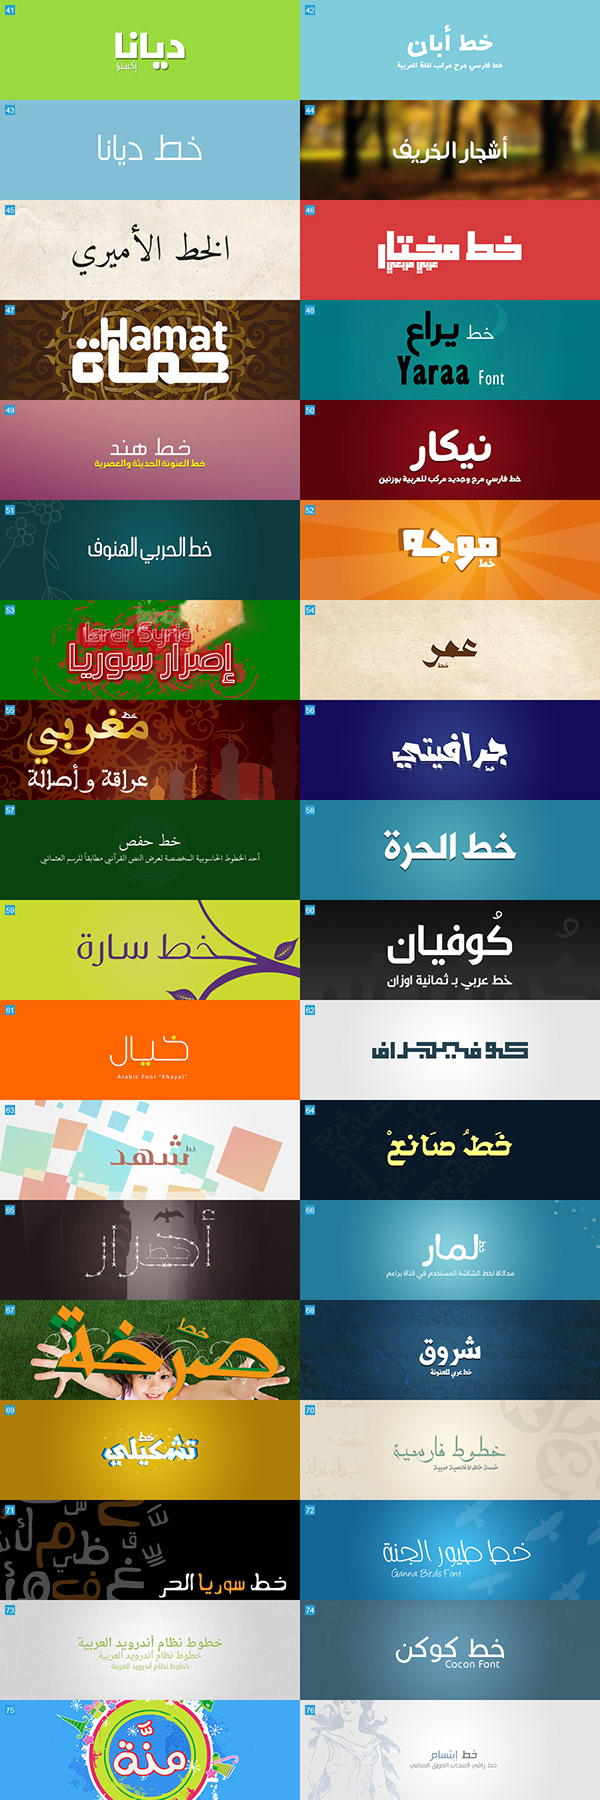 Best Arabic Fonts For Download on Wacom Gallery